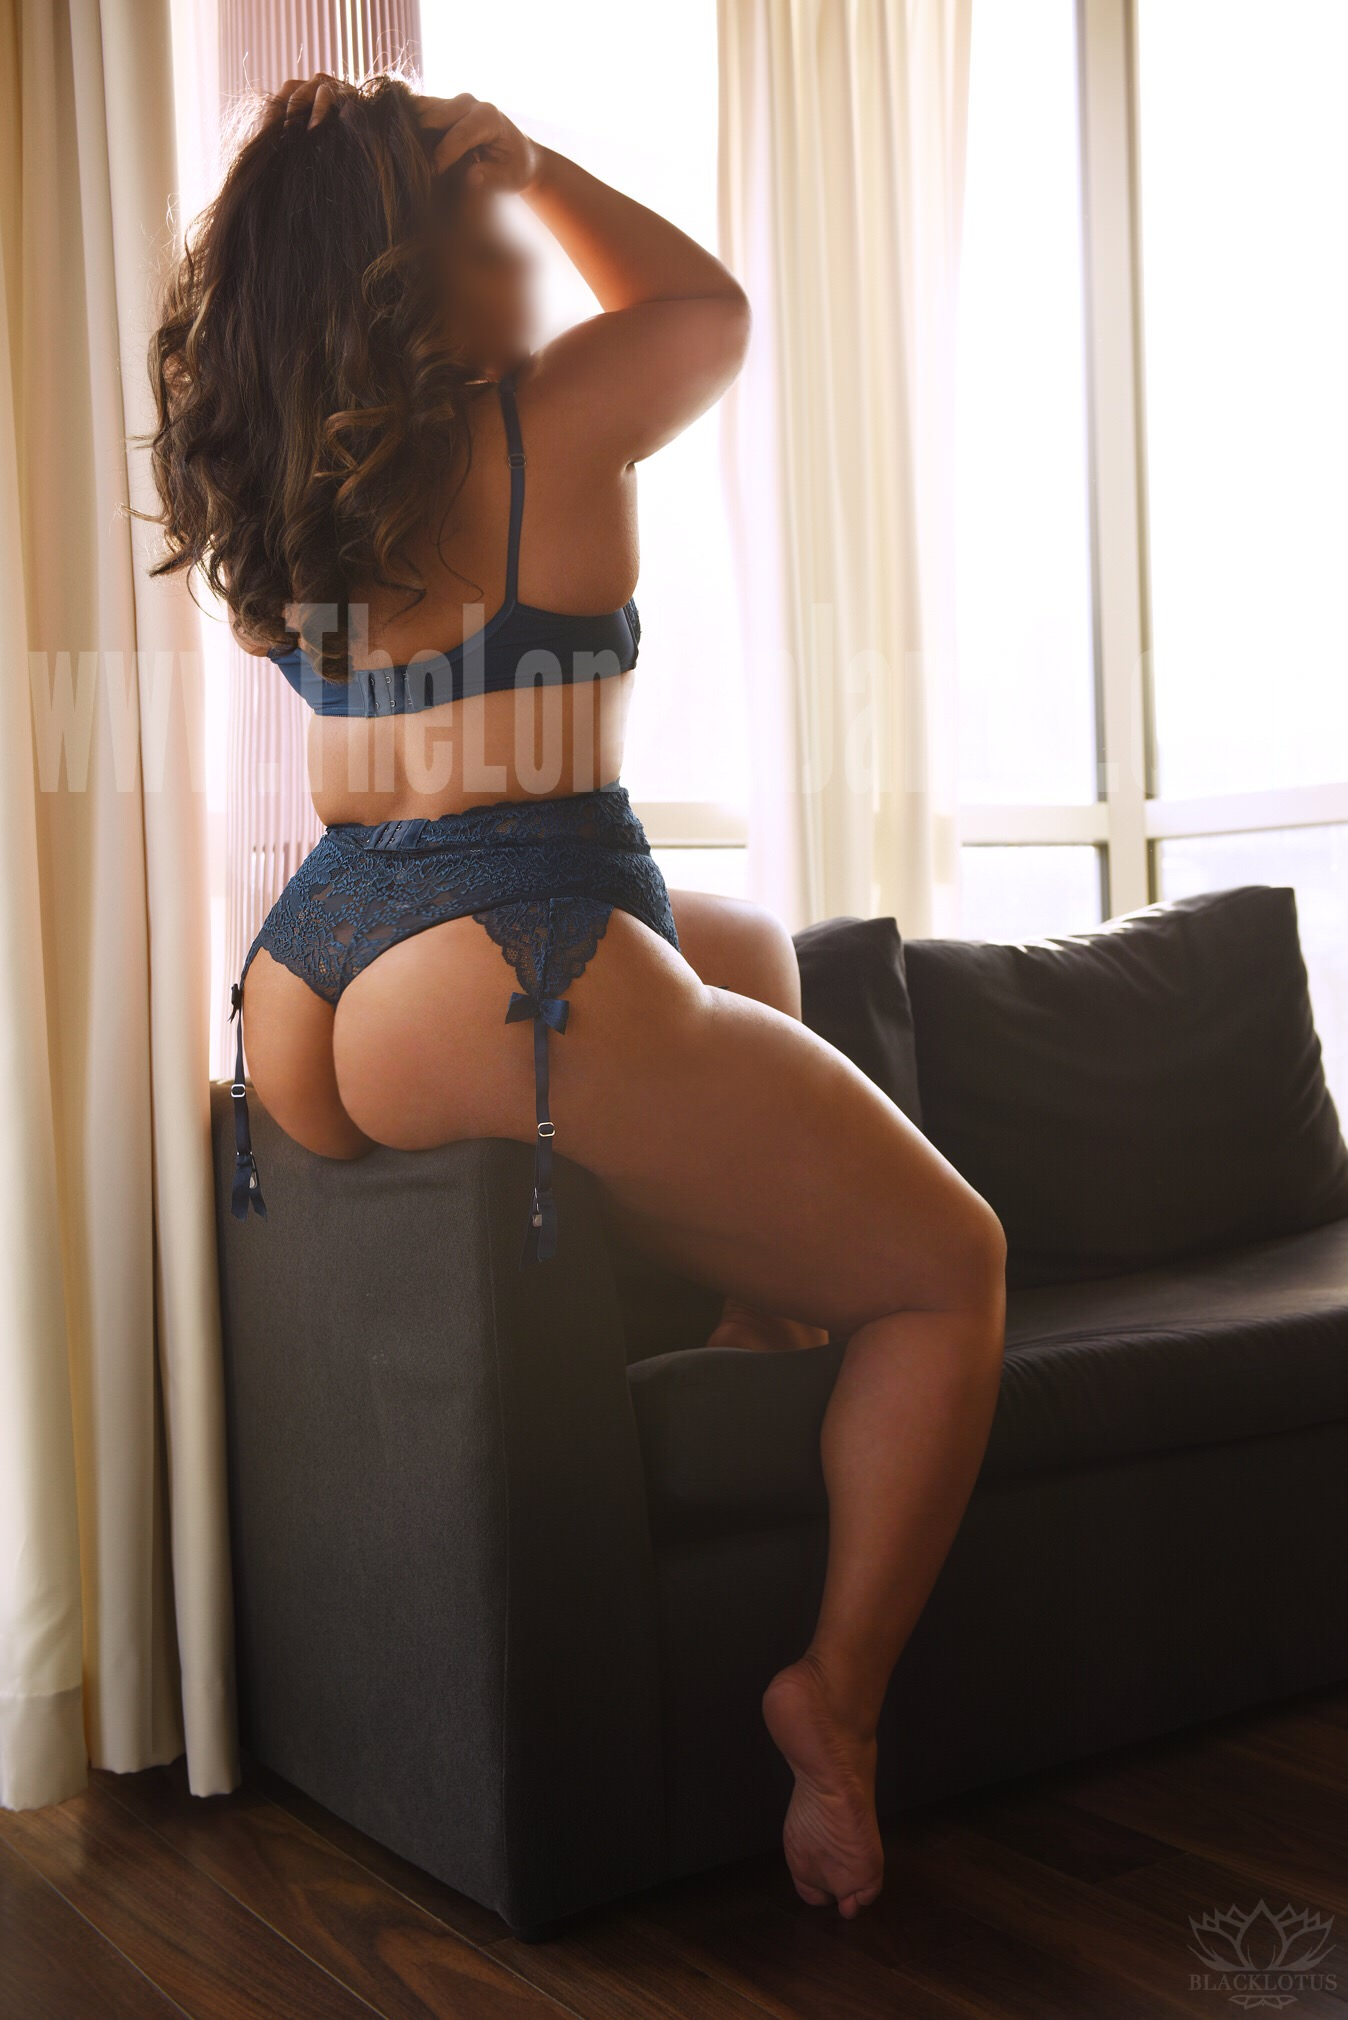 Independent escorts dc